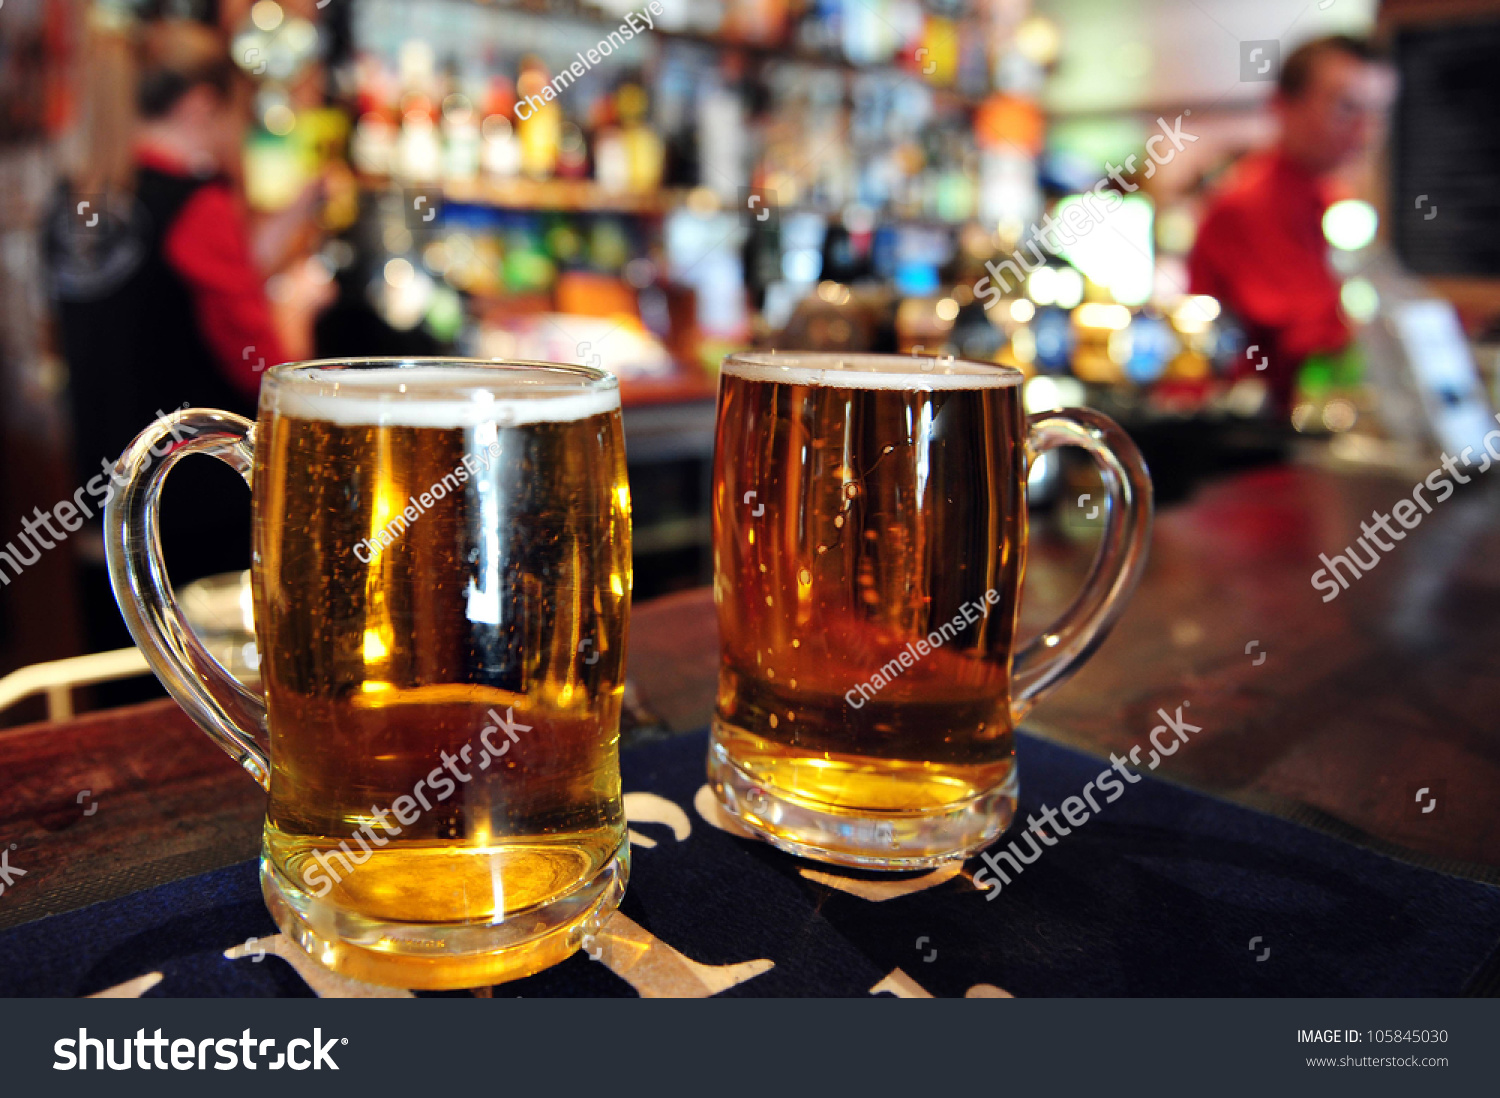 the alcohol market in new zealand National drug policy 2015 to 2020 market has gone digital the international landscape has also shifted new zealand has high rates of alcohol and other drug use over a lifetime 44 percent of new zealanders will have tried an.